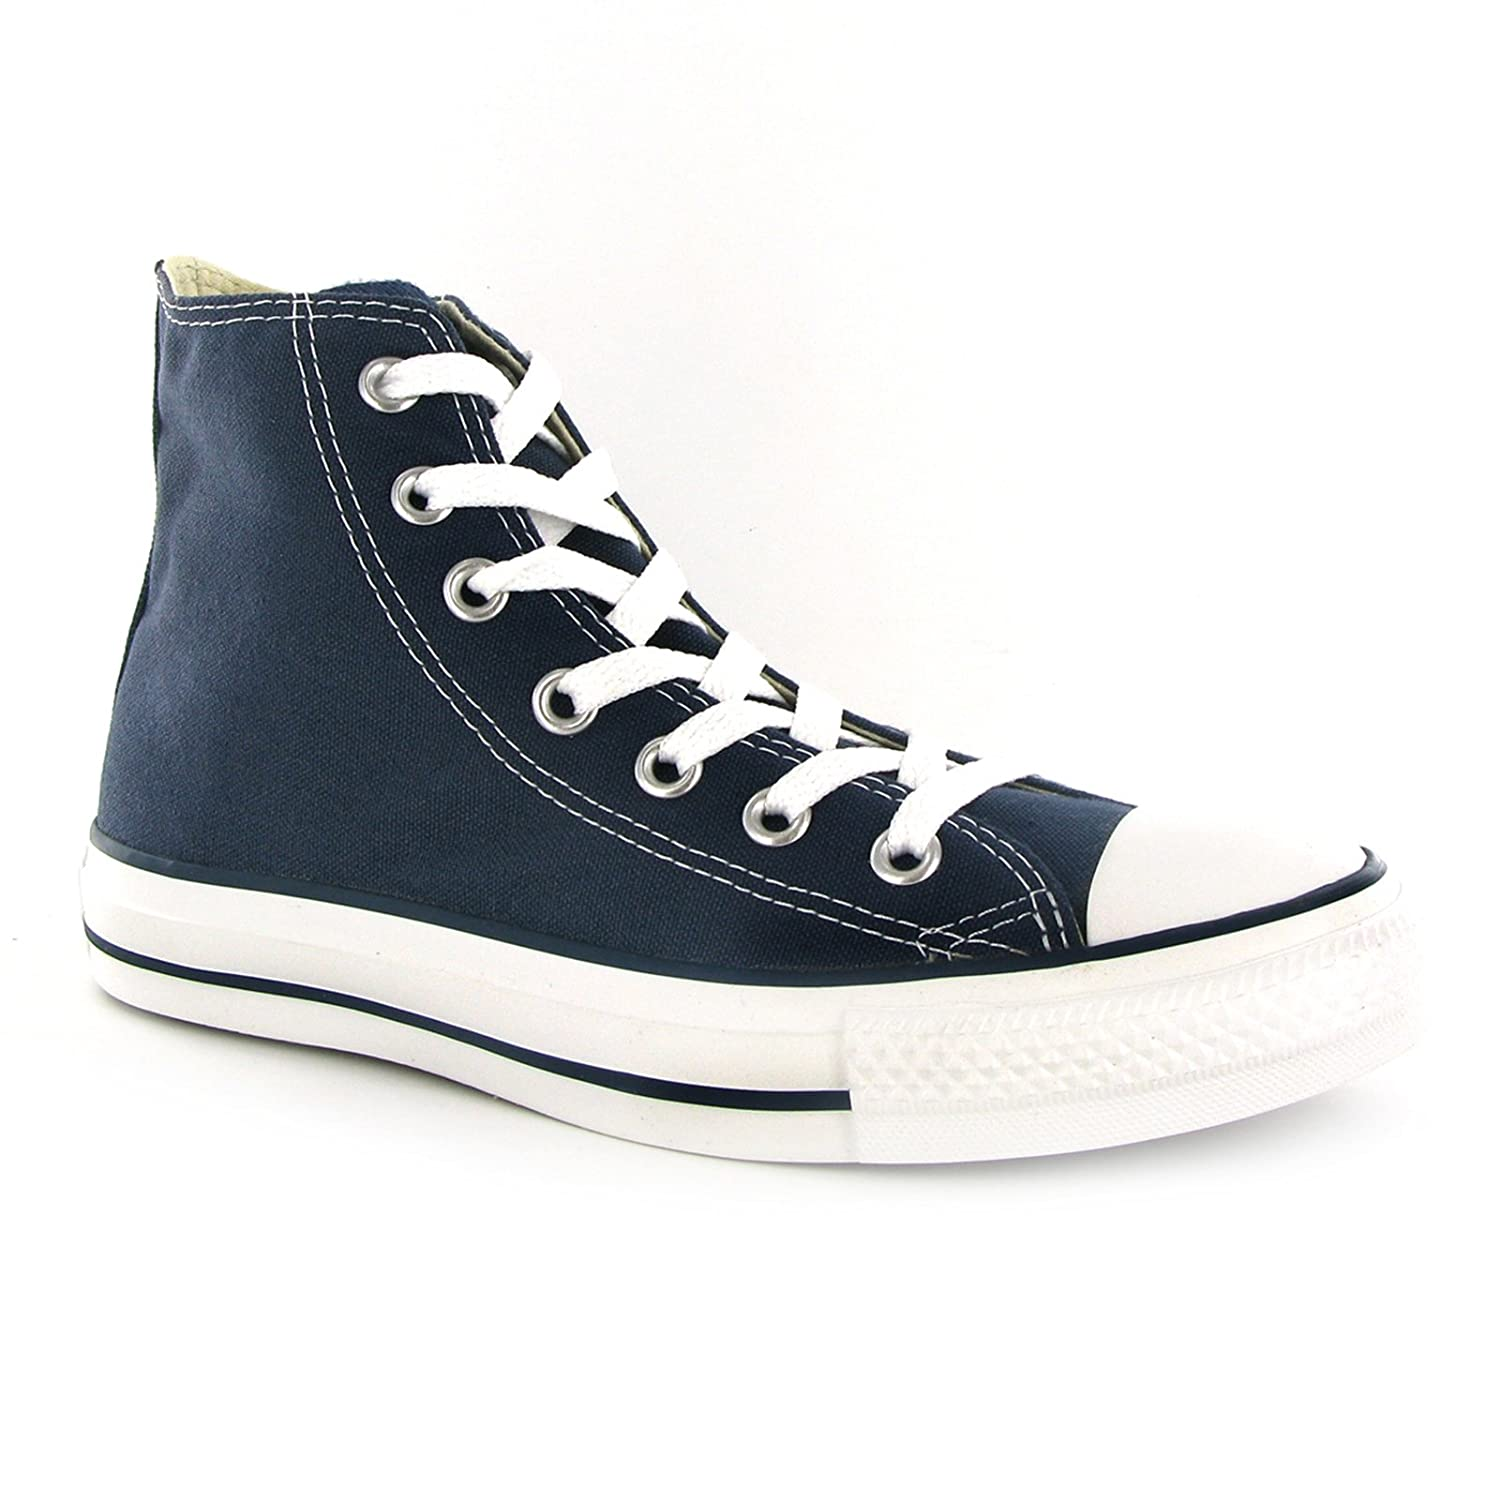 9c7a274946d5 Converse CT All Star Hi Navy Canvas Mens Trainers Size 10 UK  Amazon.co.uk   Shoes   Bags